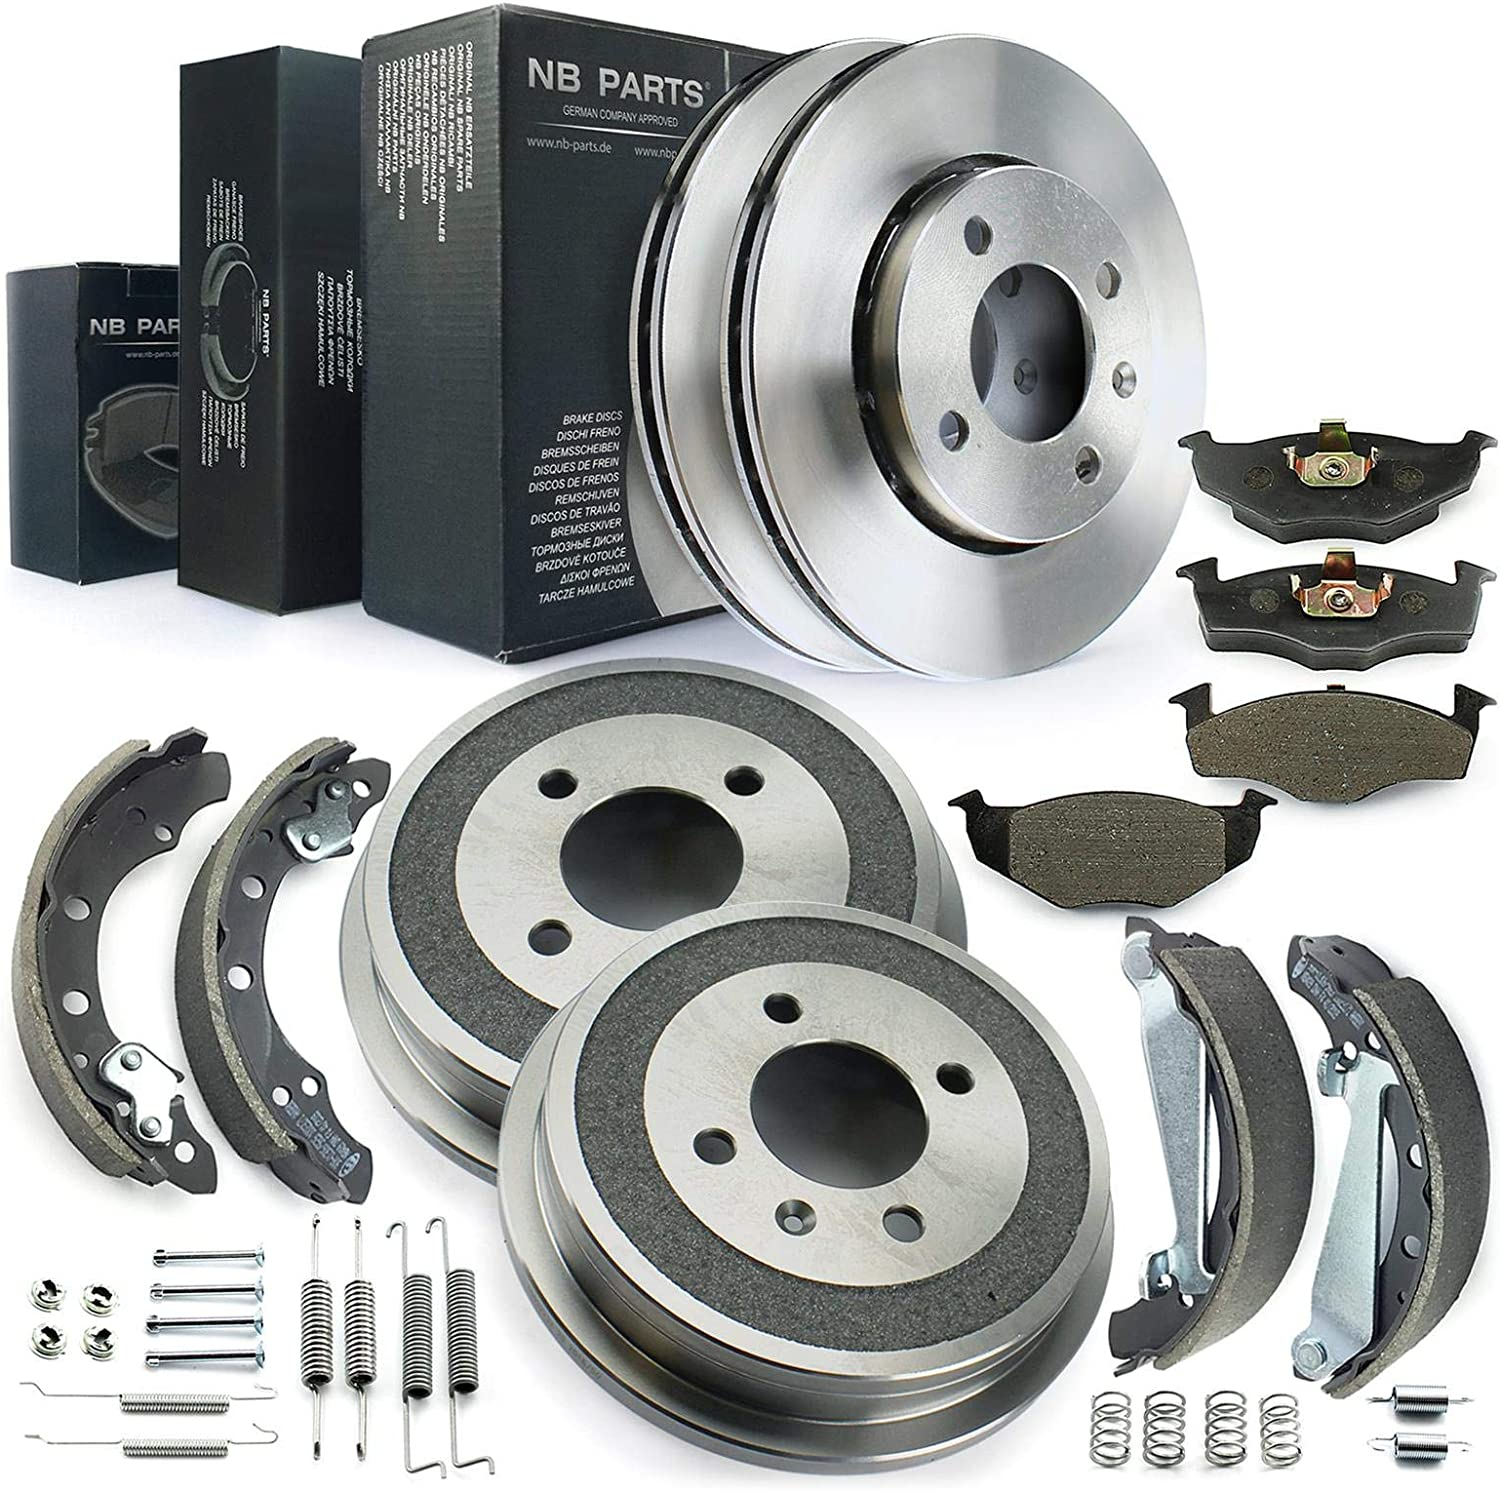 Bremsen Bremsen Set Vorne Hinten Nb Parts Germany 10042770 Auto